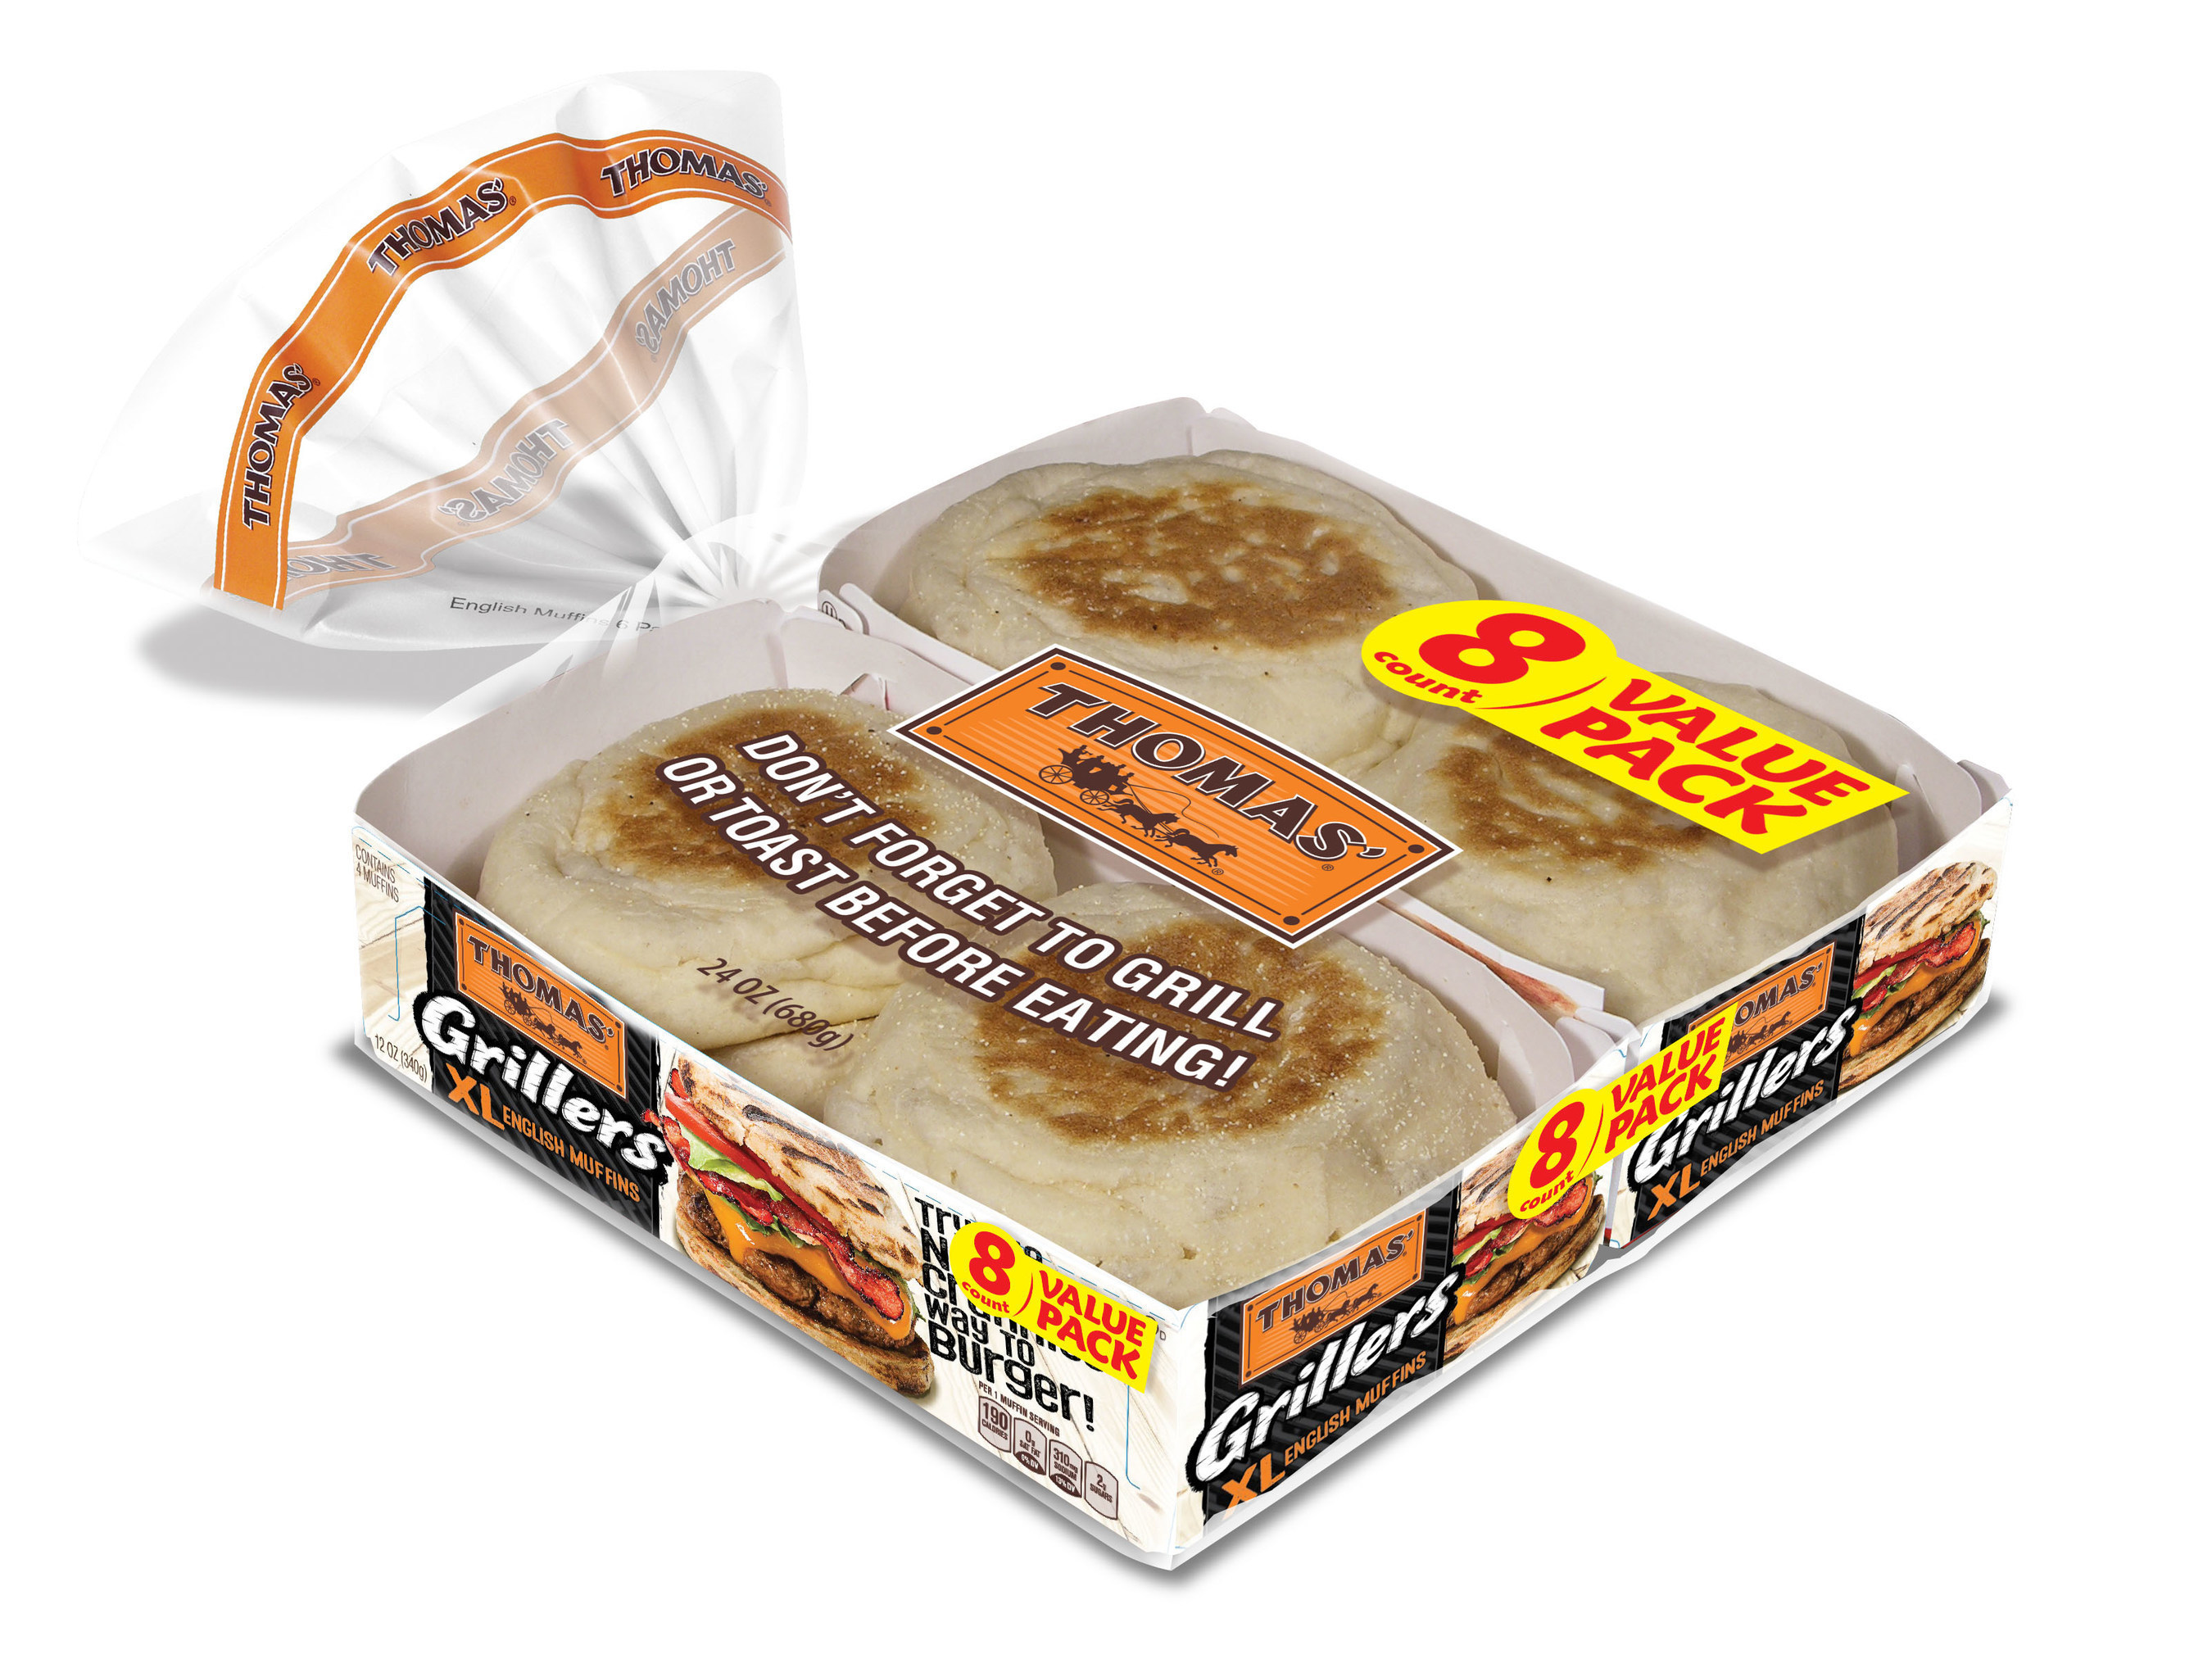 Thomas' Grillers XL English Muffins